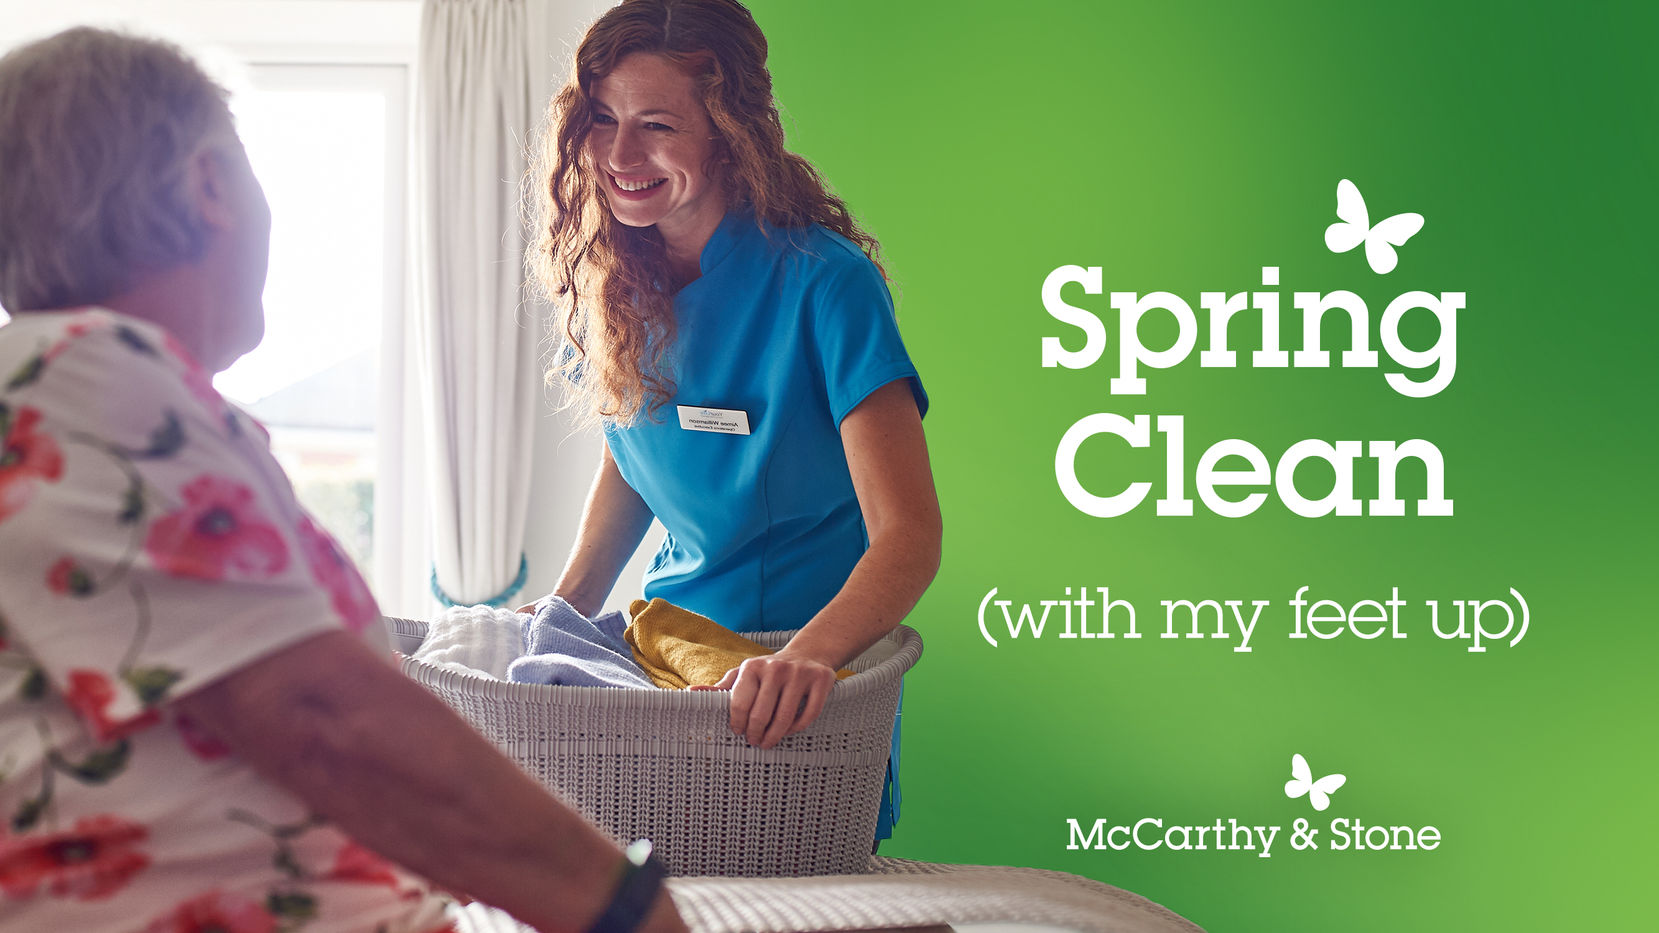 McCarthy MicroMoments 3 SpringClean pf1C